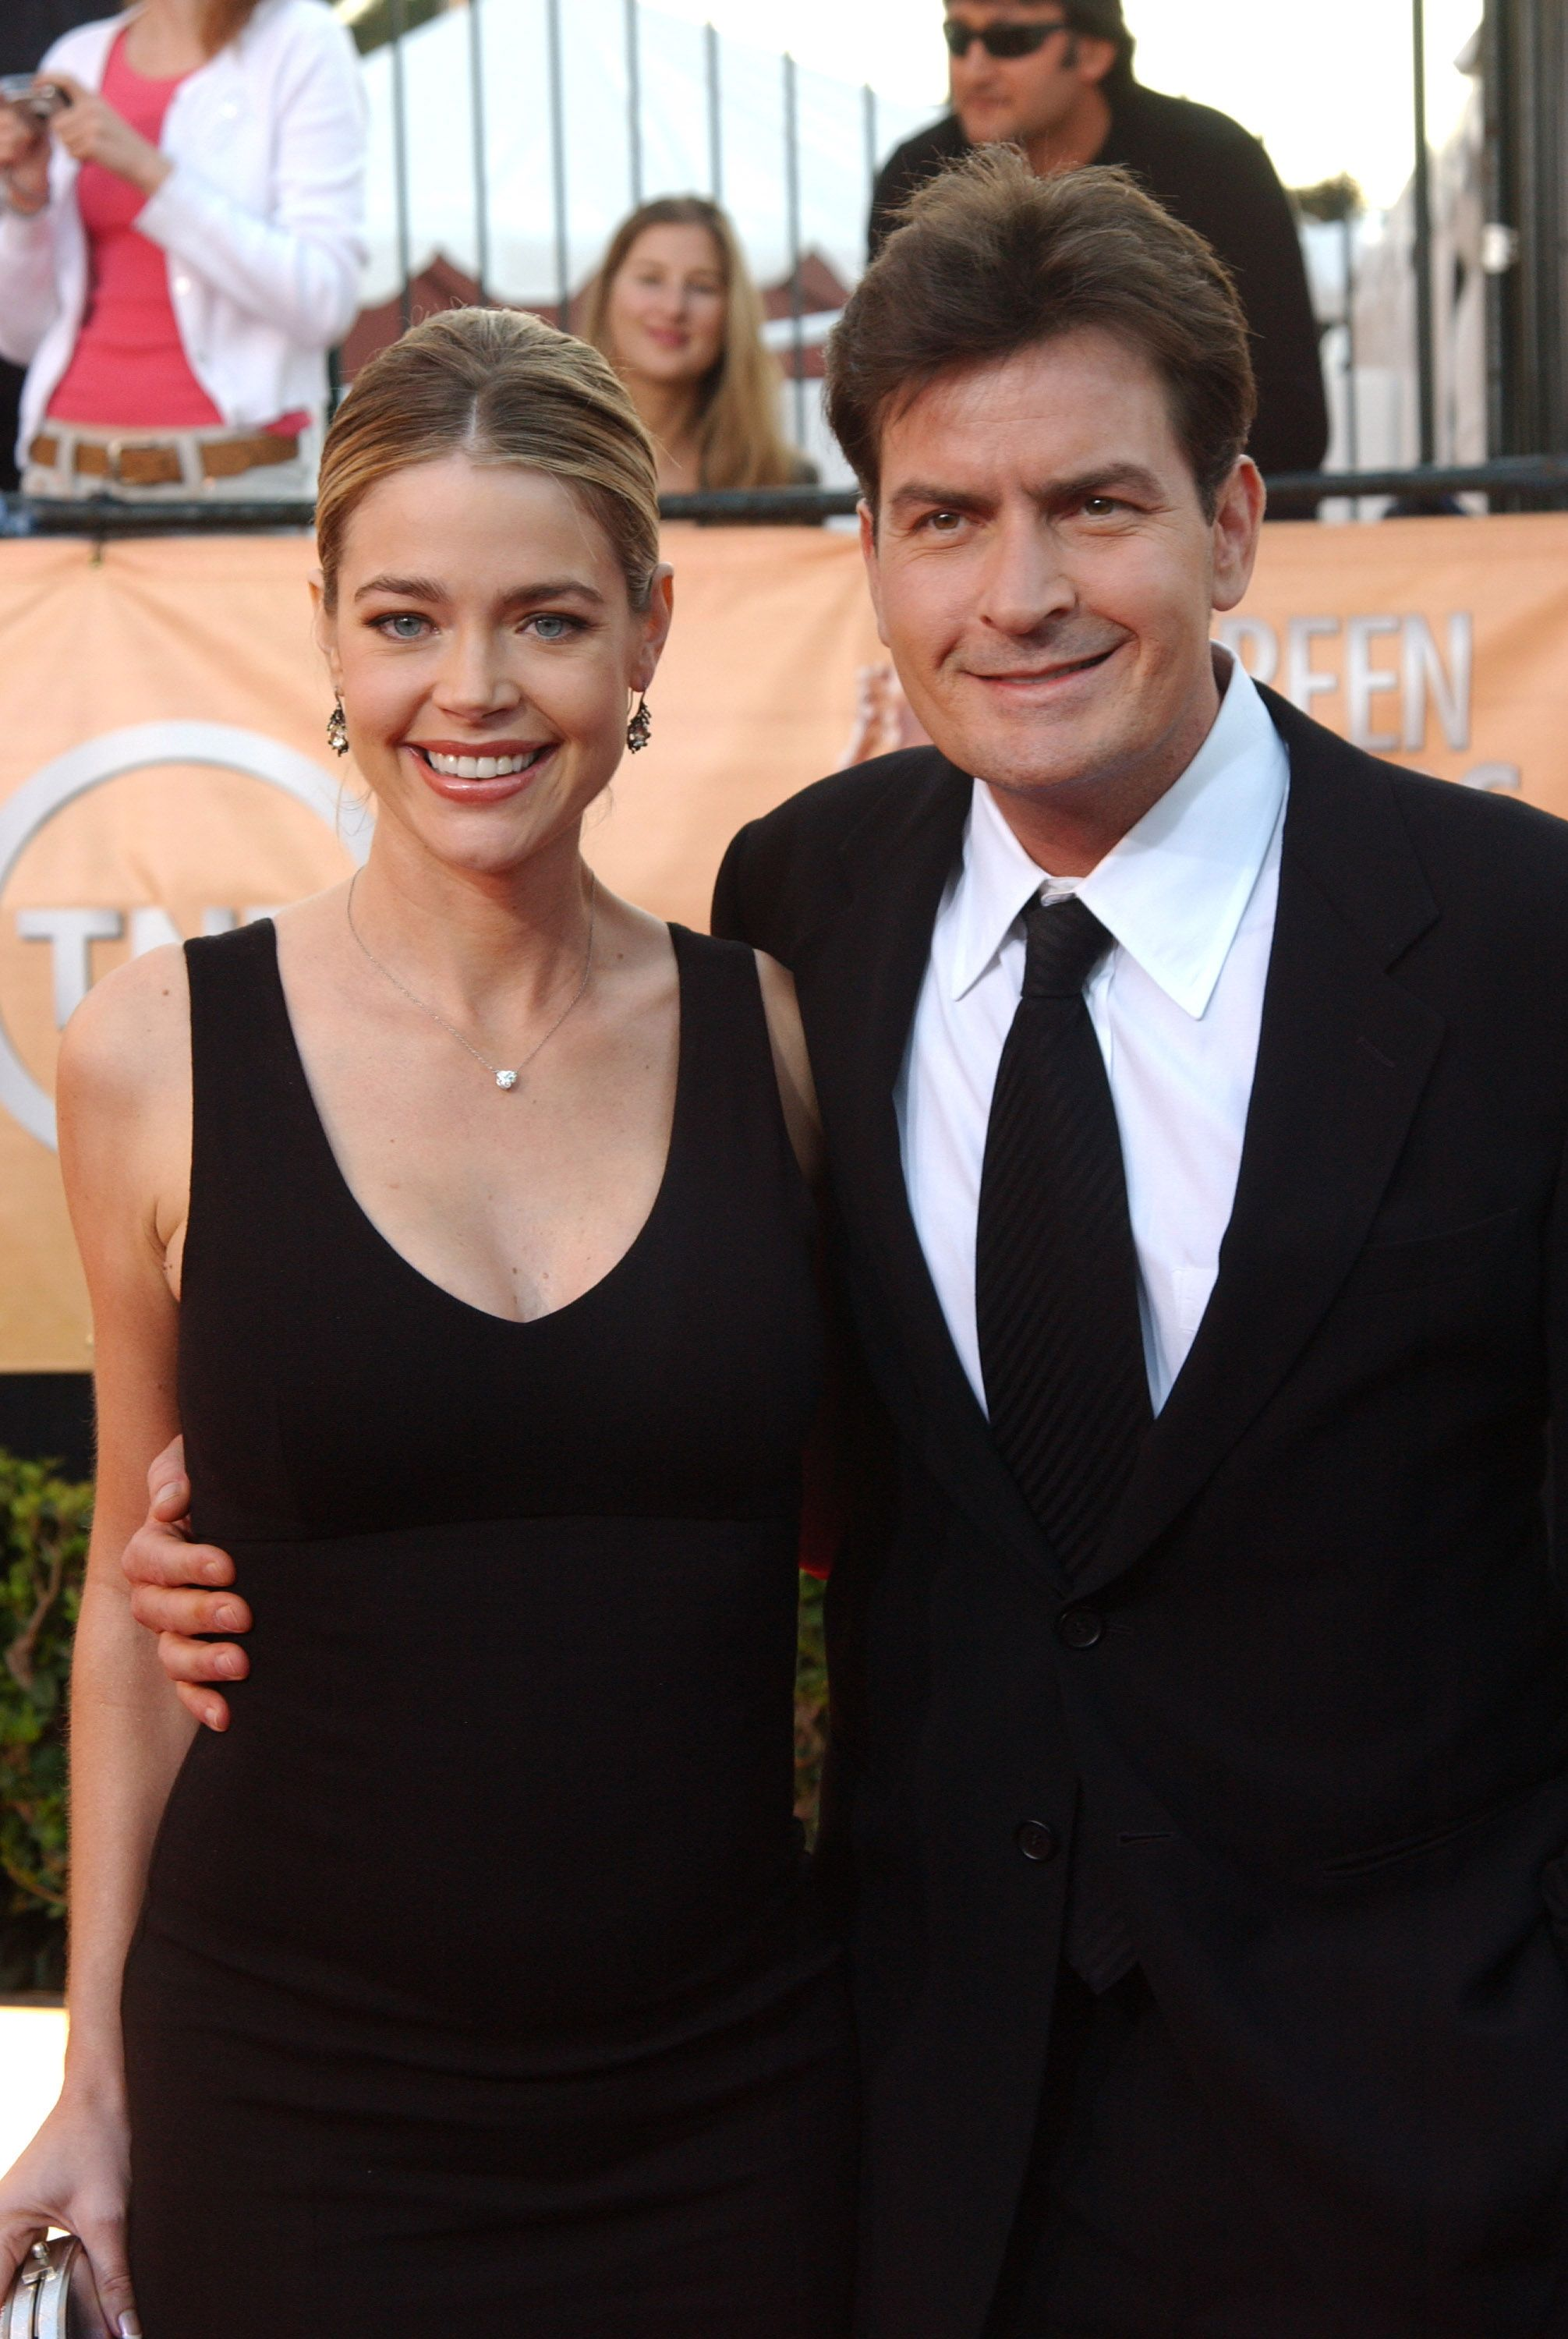 Denise Richards and Charlie Sheen at the SAG Awards, 2005 | Photo: Getty Images